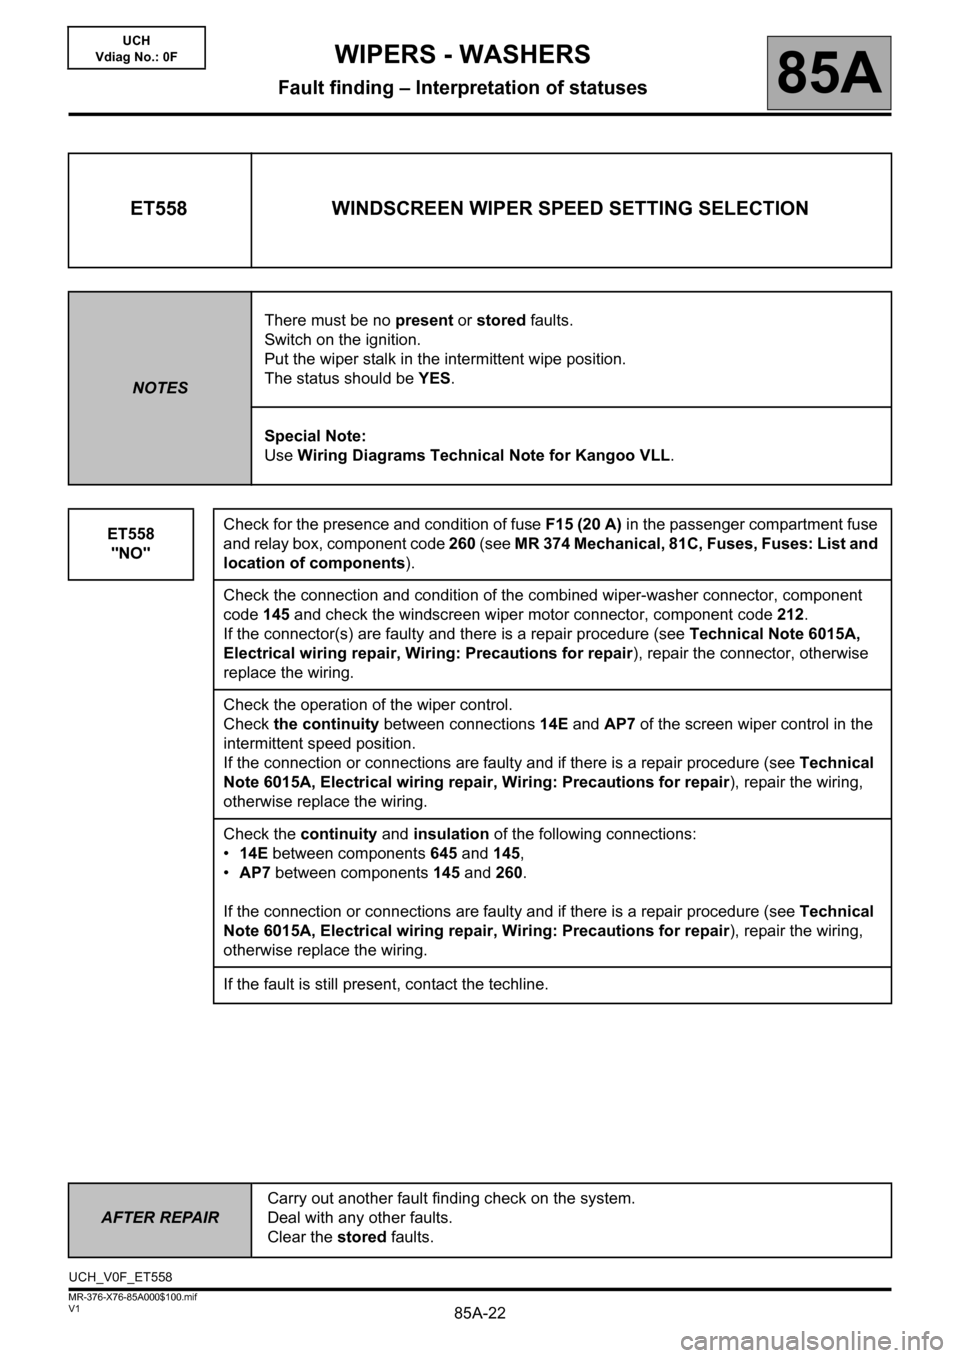 RENAULT KANGOO 2013 X61 / 2.G Wipers And Washers Workshop Manual, Page 22